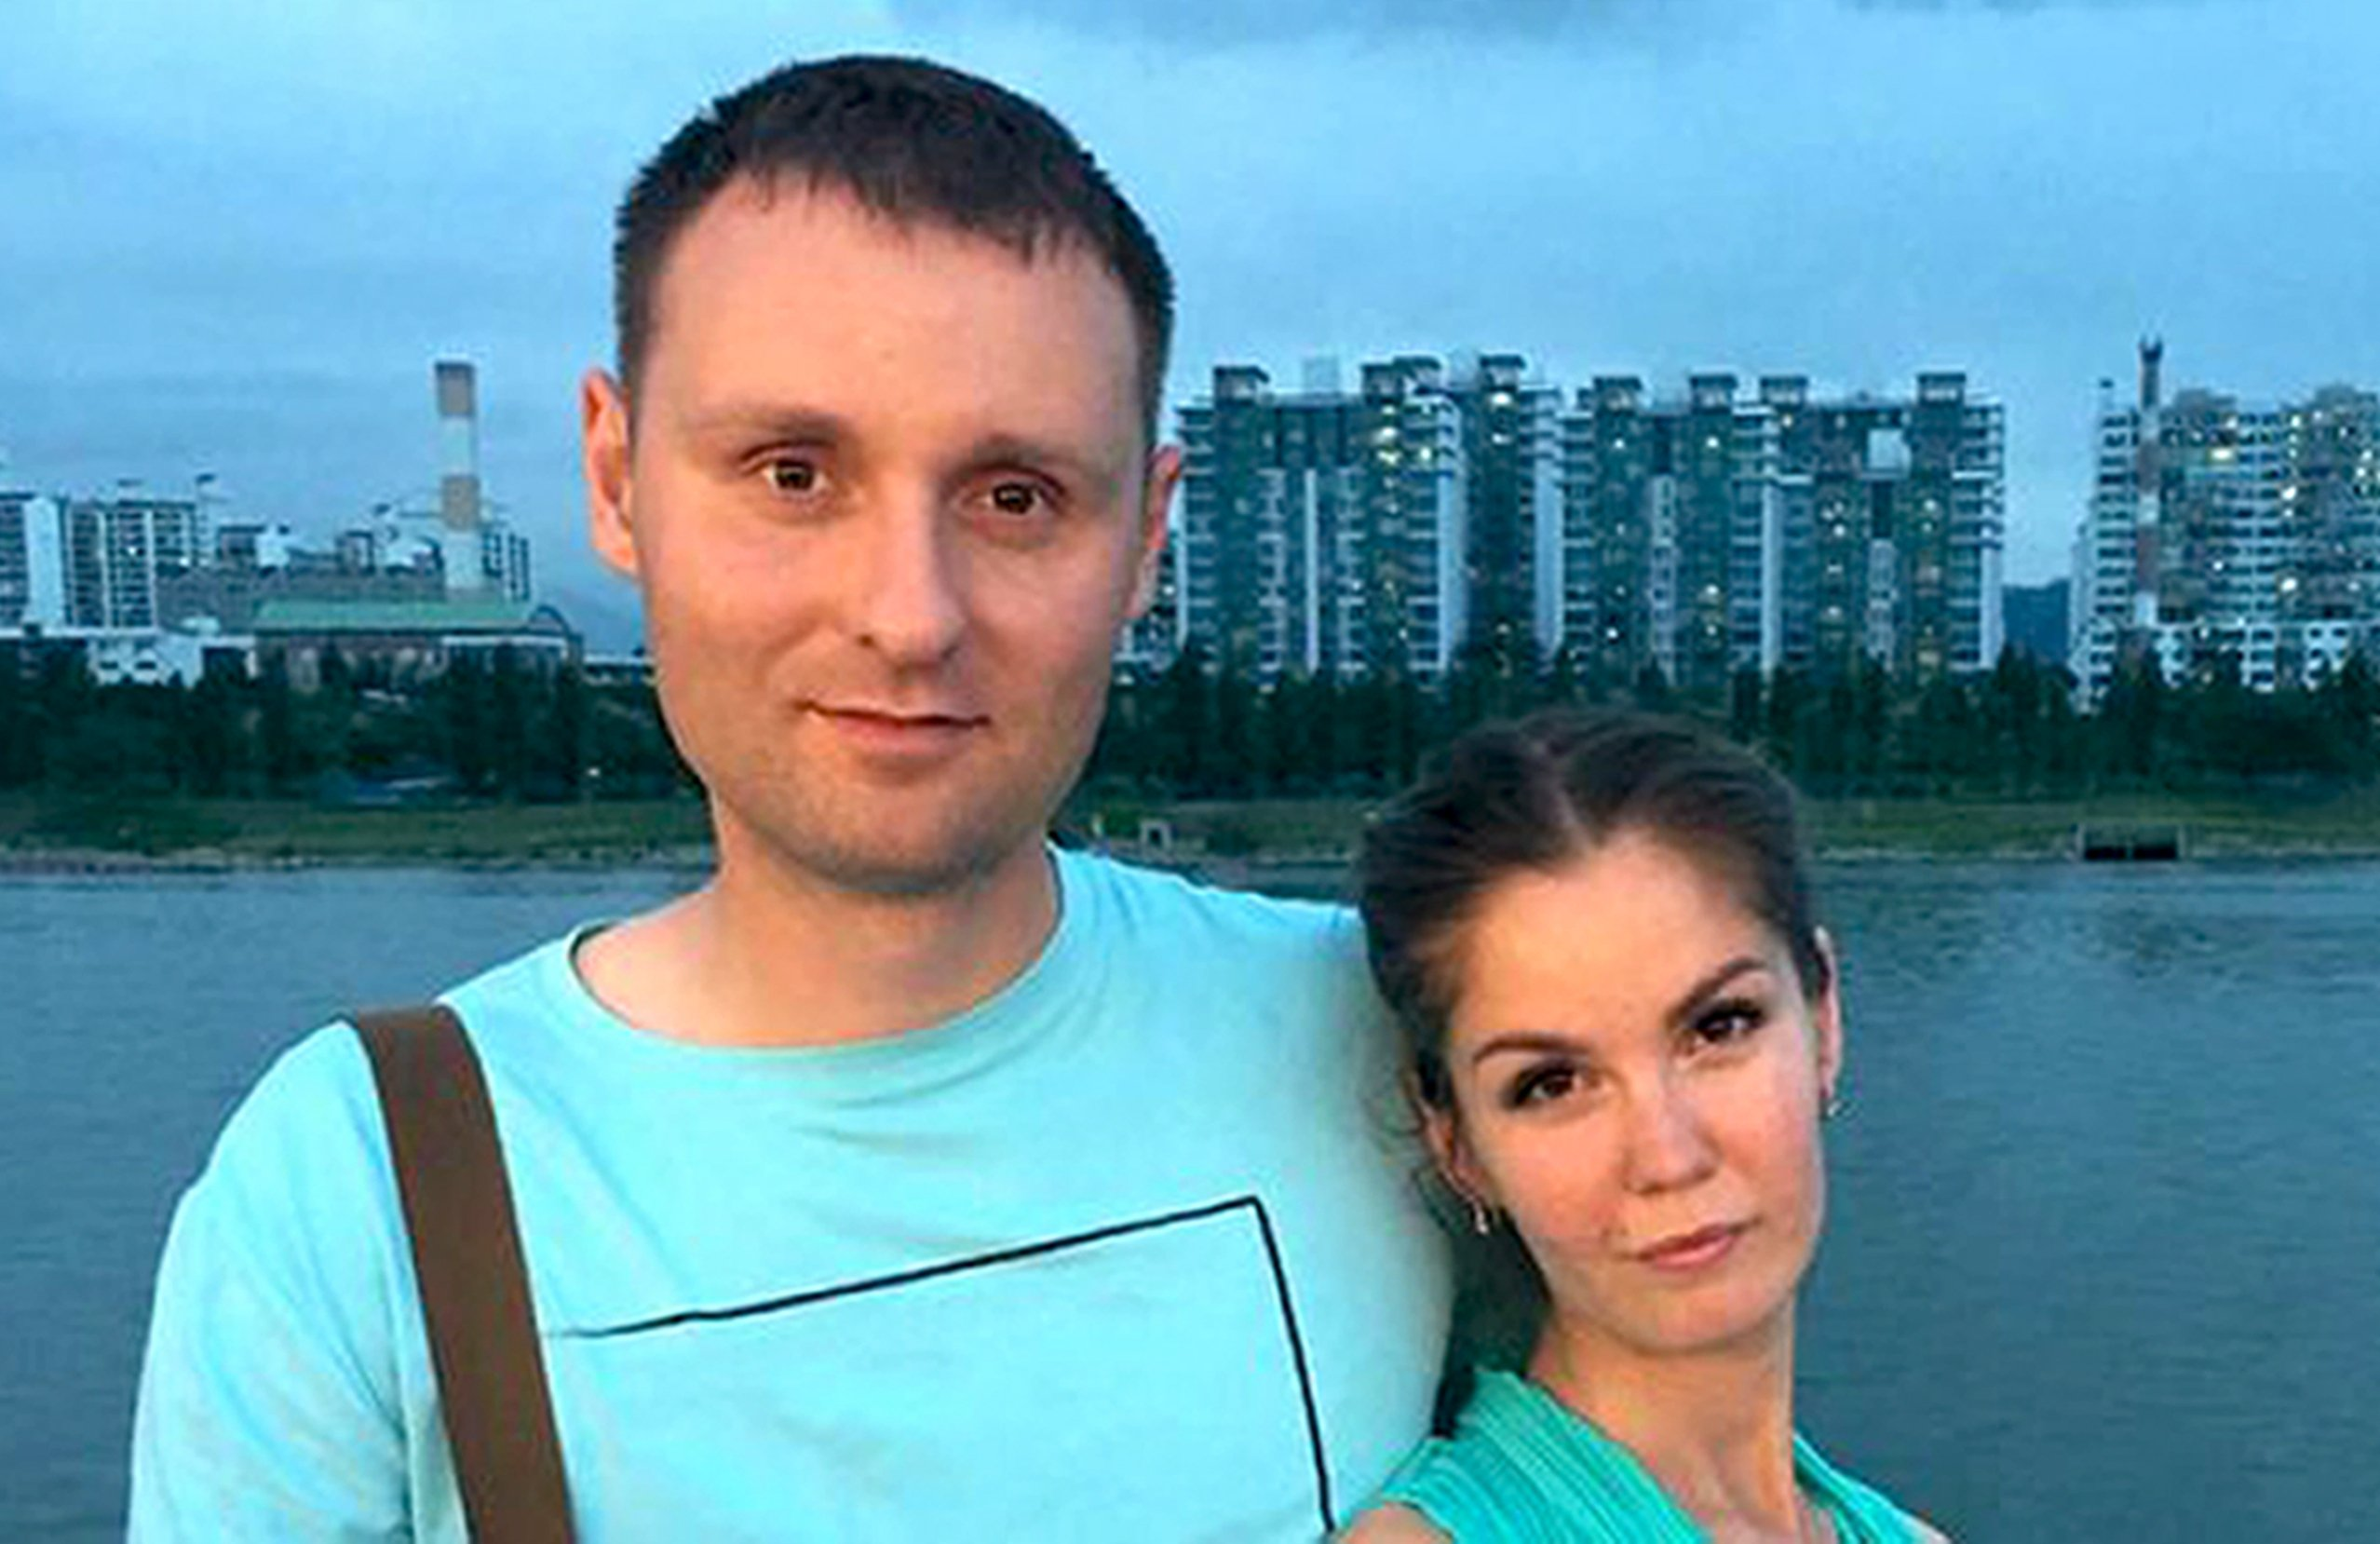 Jehovah's Witnesses report convictions, torture in Russia